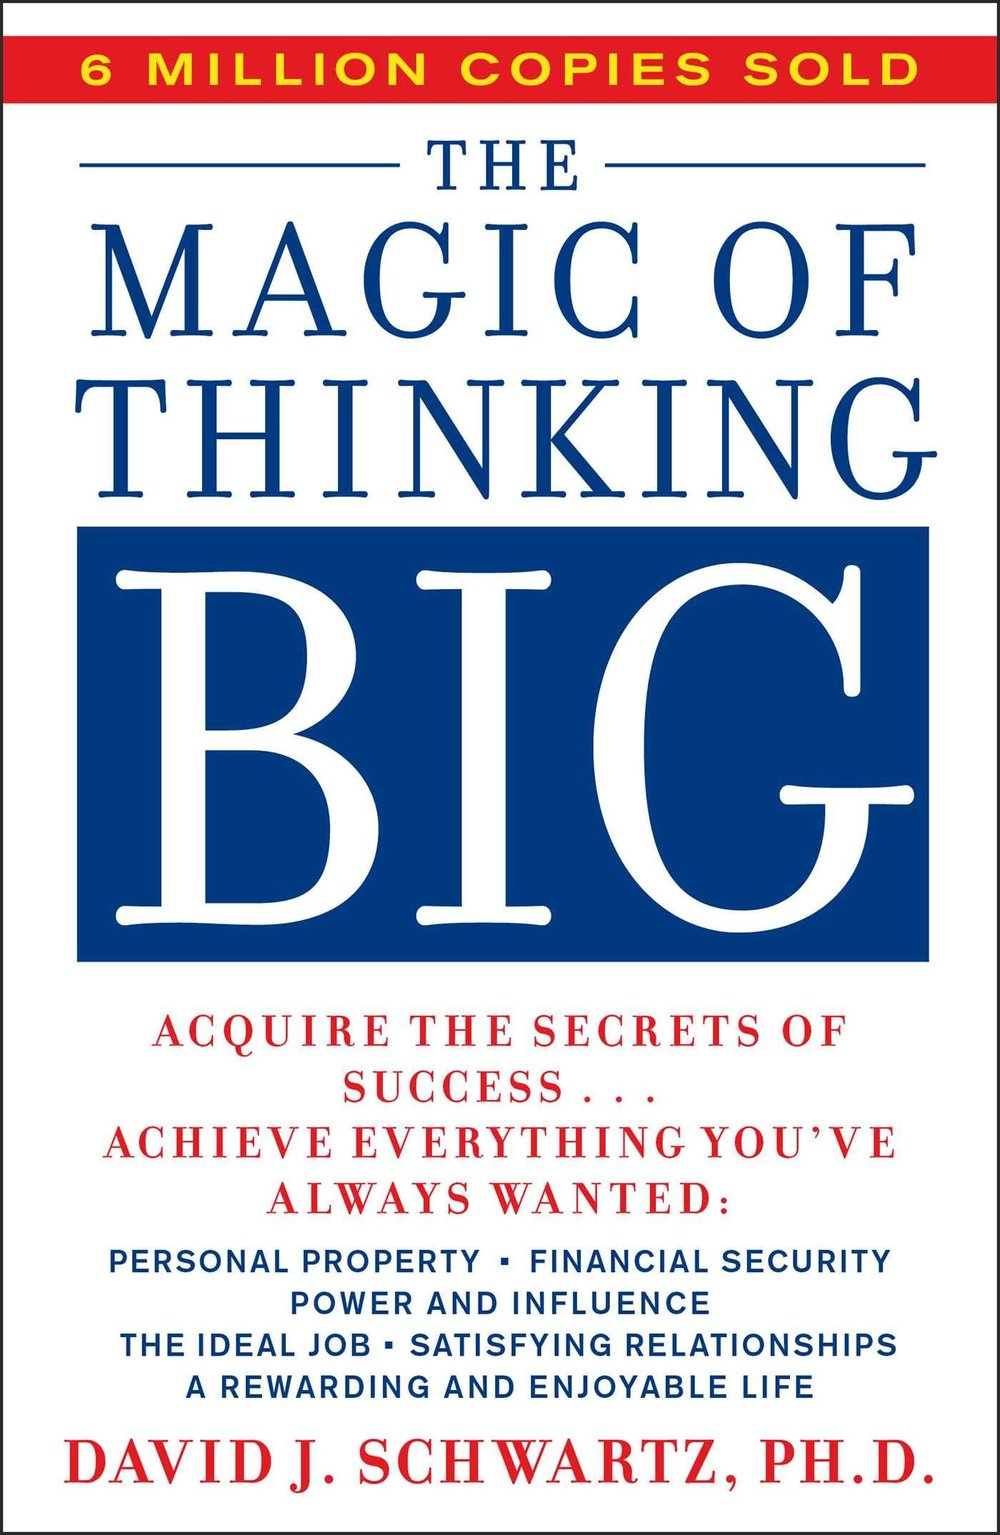 The Magic of Thinking Big by David J. Schwartz - In this industry, you're going to go through obstacles, and this book can help guide you through that. Success begins in your mind! Your mind is a powerful tool. You can either let it break you, or you can show it who's boss.